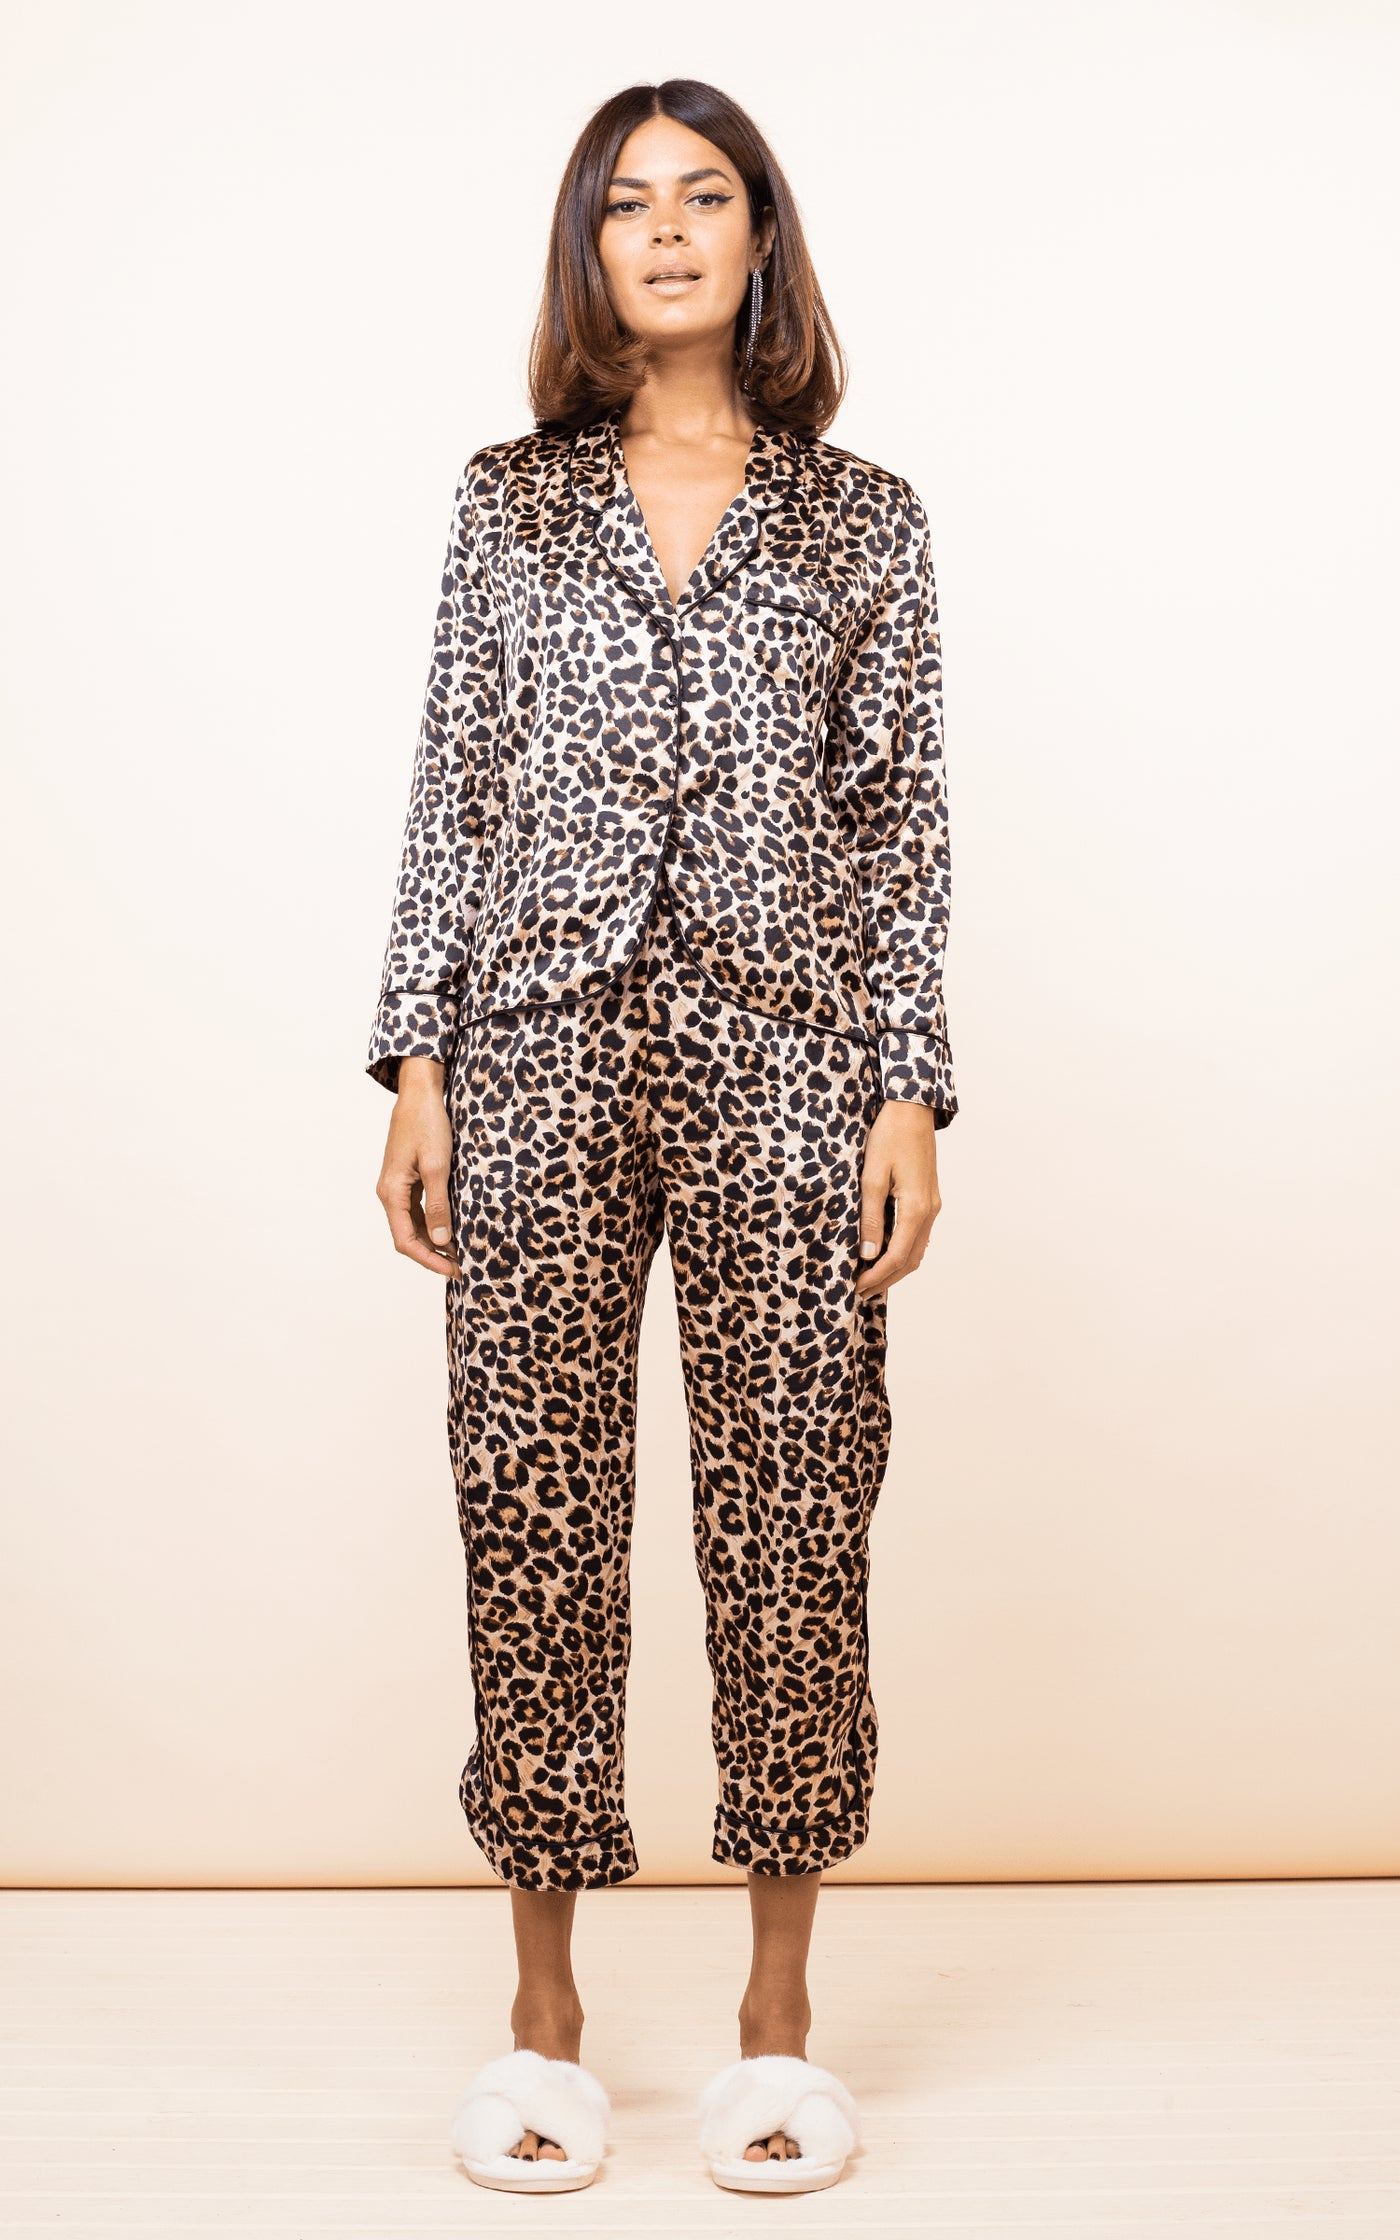 Dancing Leopard model faces forward wearing Enya PJ Set in Rich Leopard print with slippers